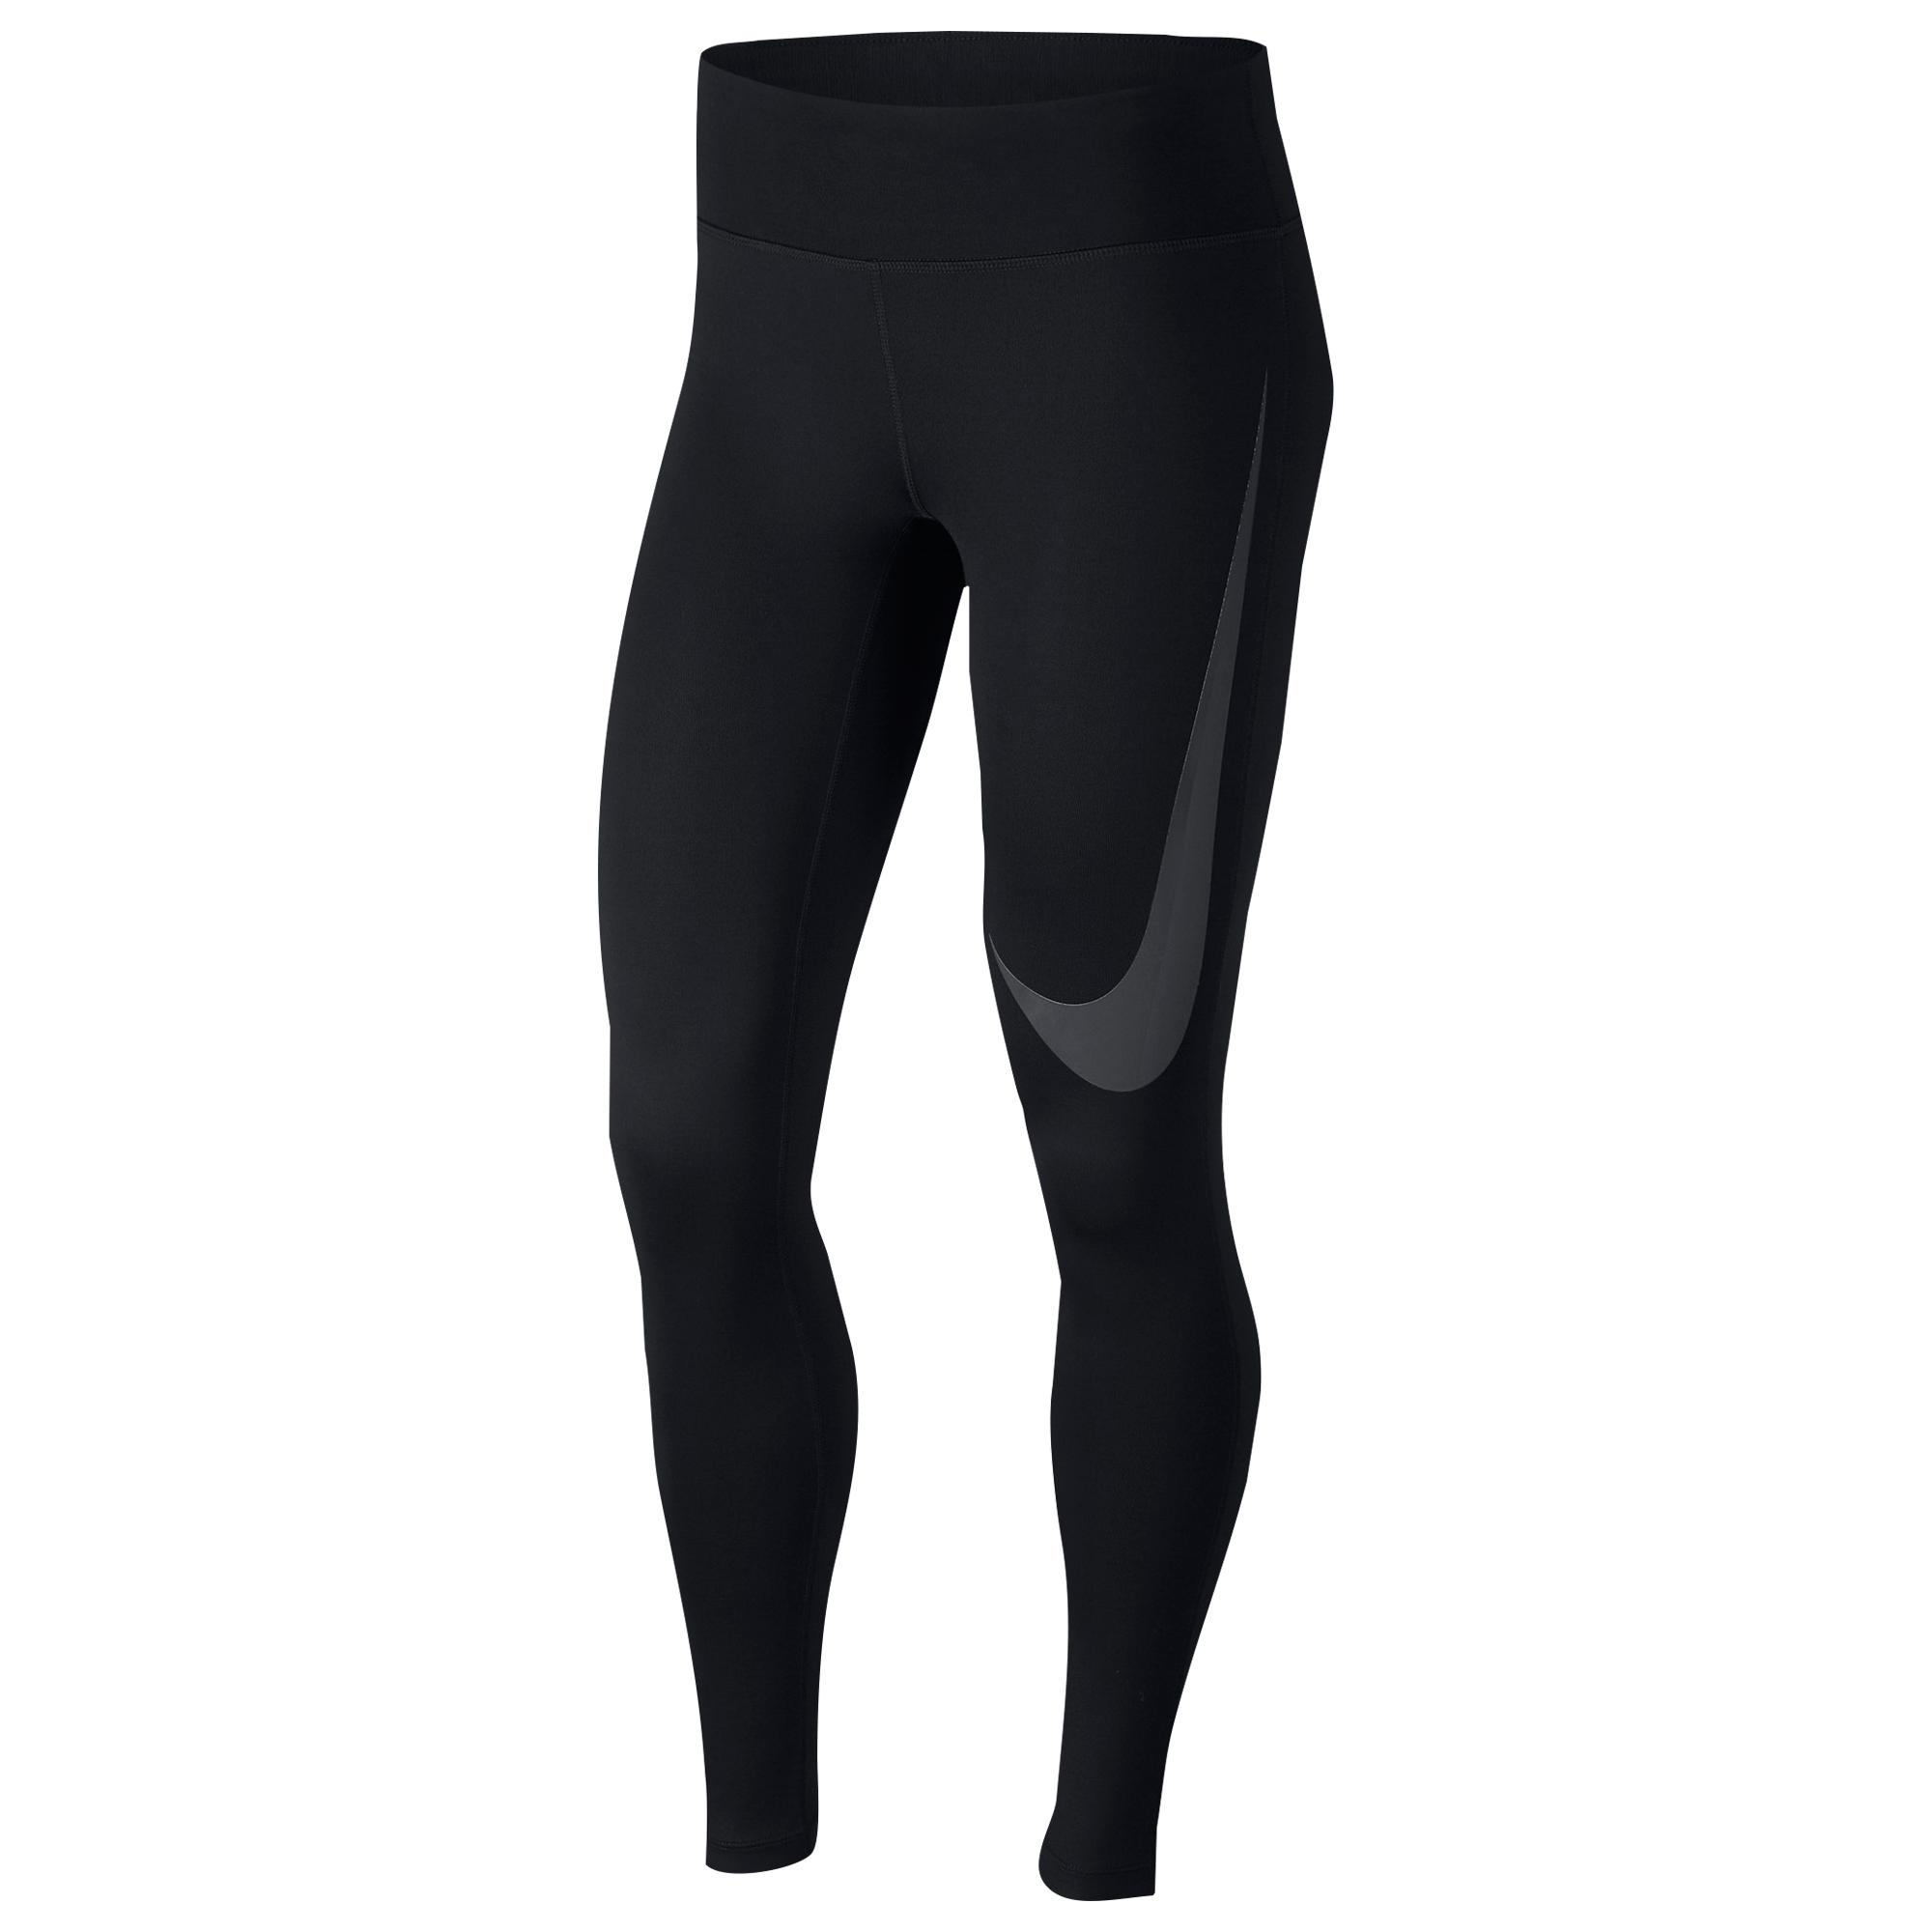 3110440909420 Nike Dri-fit Power Essential Tights in Black - Lyst